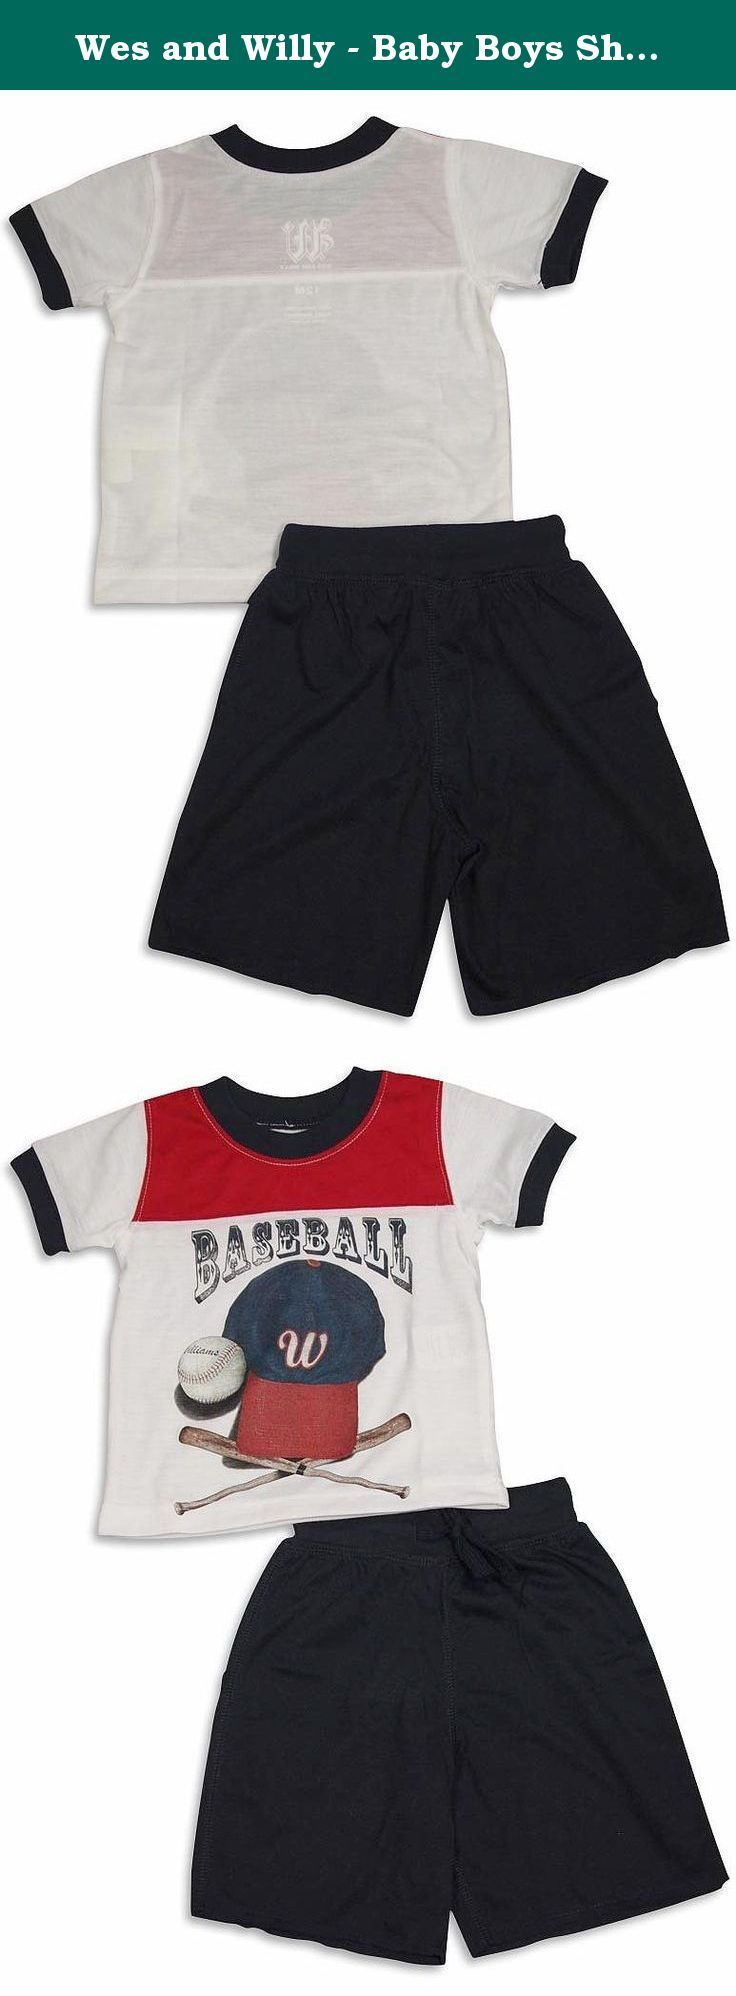 Wes and Willy - Baby Boys Short Sleeve Shortie Pajamas, Red, White, Navy 29126-12Months. Wes and Willy - Infant Boys Short Sleeve Shortie Pajamas, Red, White, Navy, Short Sleeve Top, Ribbed Neck and Sleevebands, Colorblocked, BASEBALL With Graphic, Full Elastic Wide Ribbed Waistband Short With Drawstring Tie, Cut Hem, Flame Resistant, 100% Polyester, Made In China, #29126 29-126.